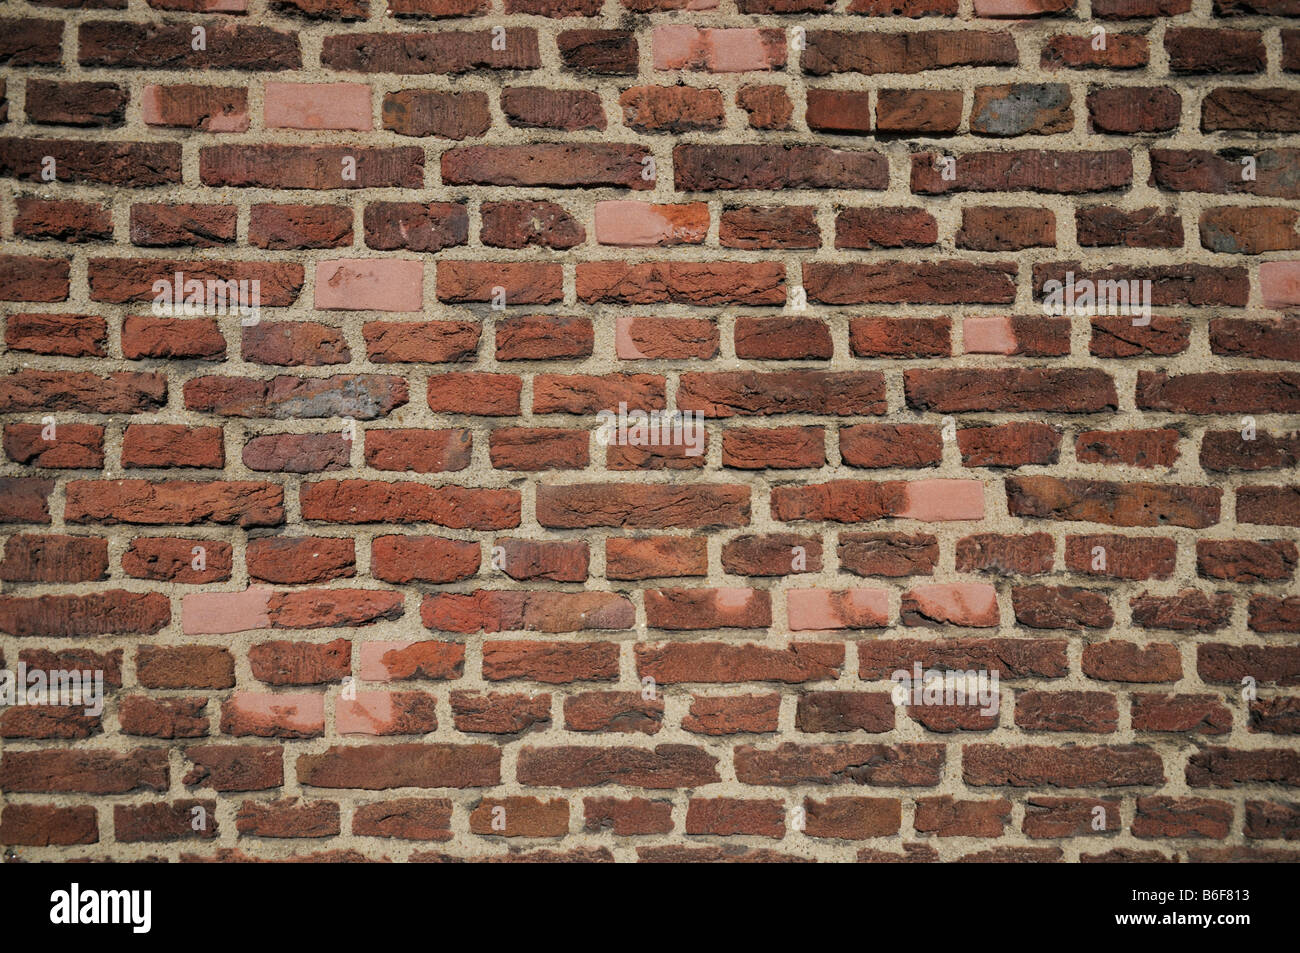 Old red brick wall - Stock Image